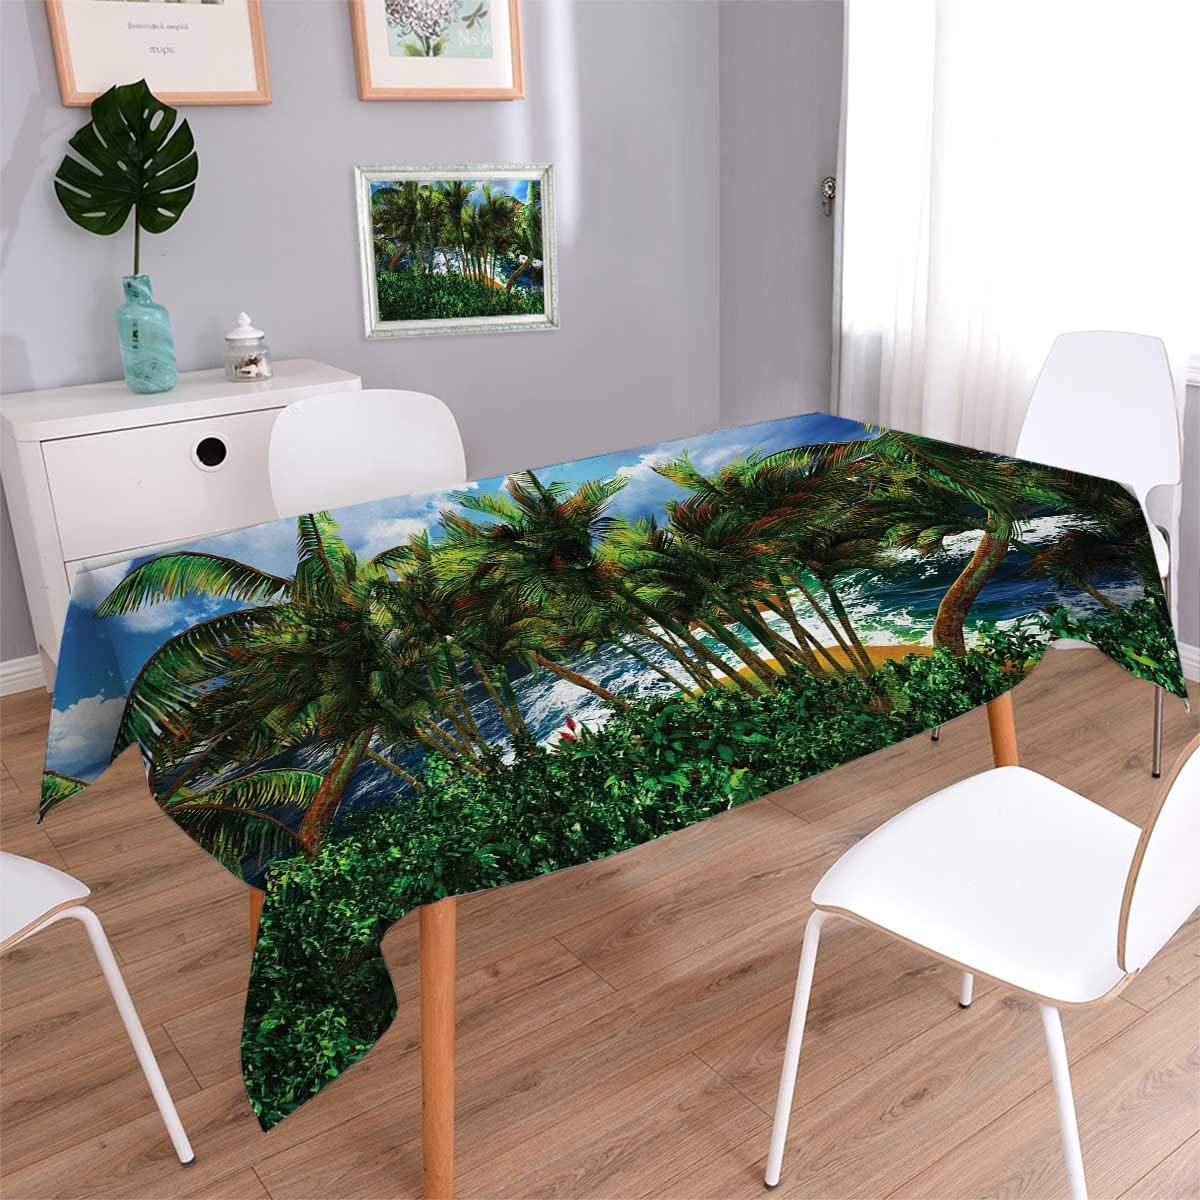 Anmaseven Hawaiian Rectangle Washable Tablecloth Hawaii Island Palm Trees Forest Greenery Cloudy Summer Sky Sunlight Seascape Waterproof Tablecloths Green Blue Brown Size: W60 x L120